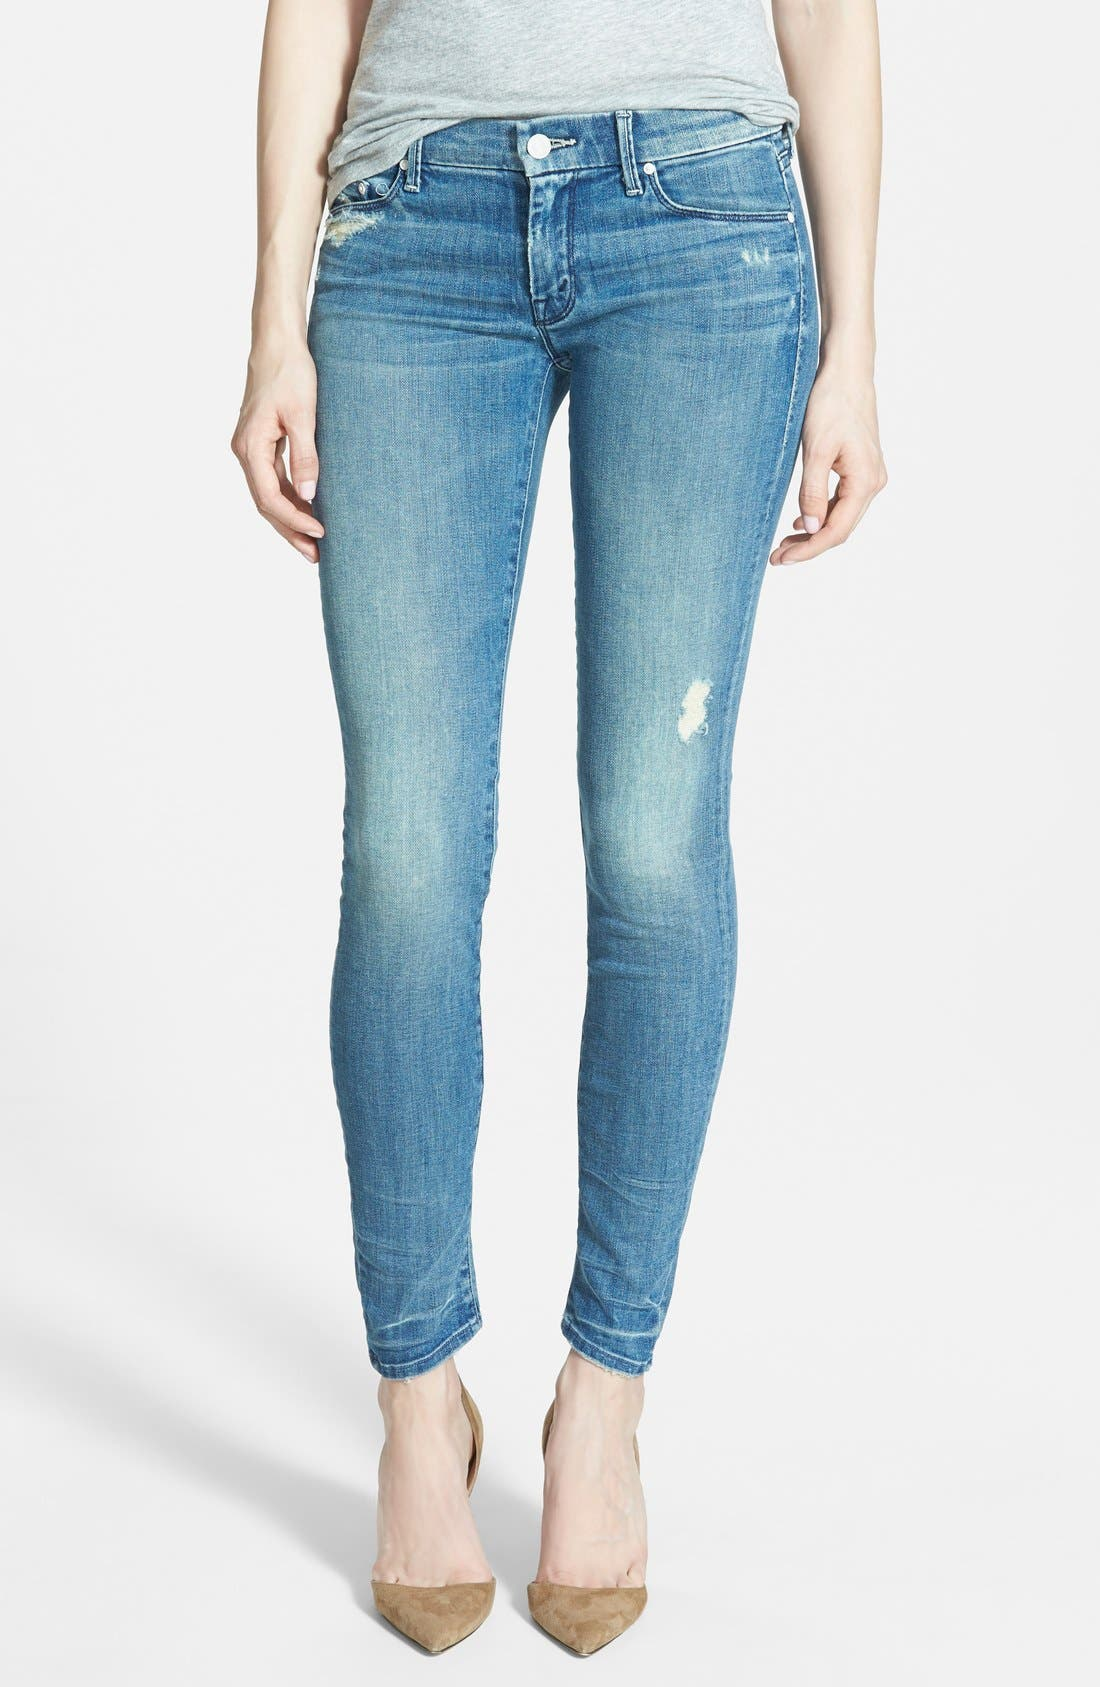 'The Looker' Skinny Stretch Jeans,                         Main,                         color, Graffiti Girl